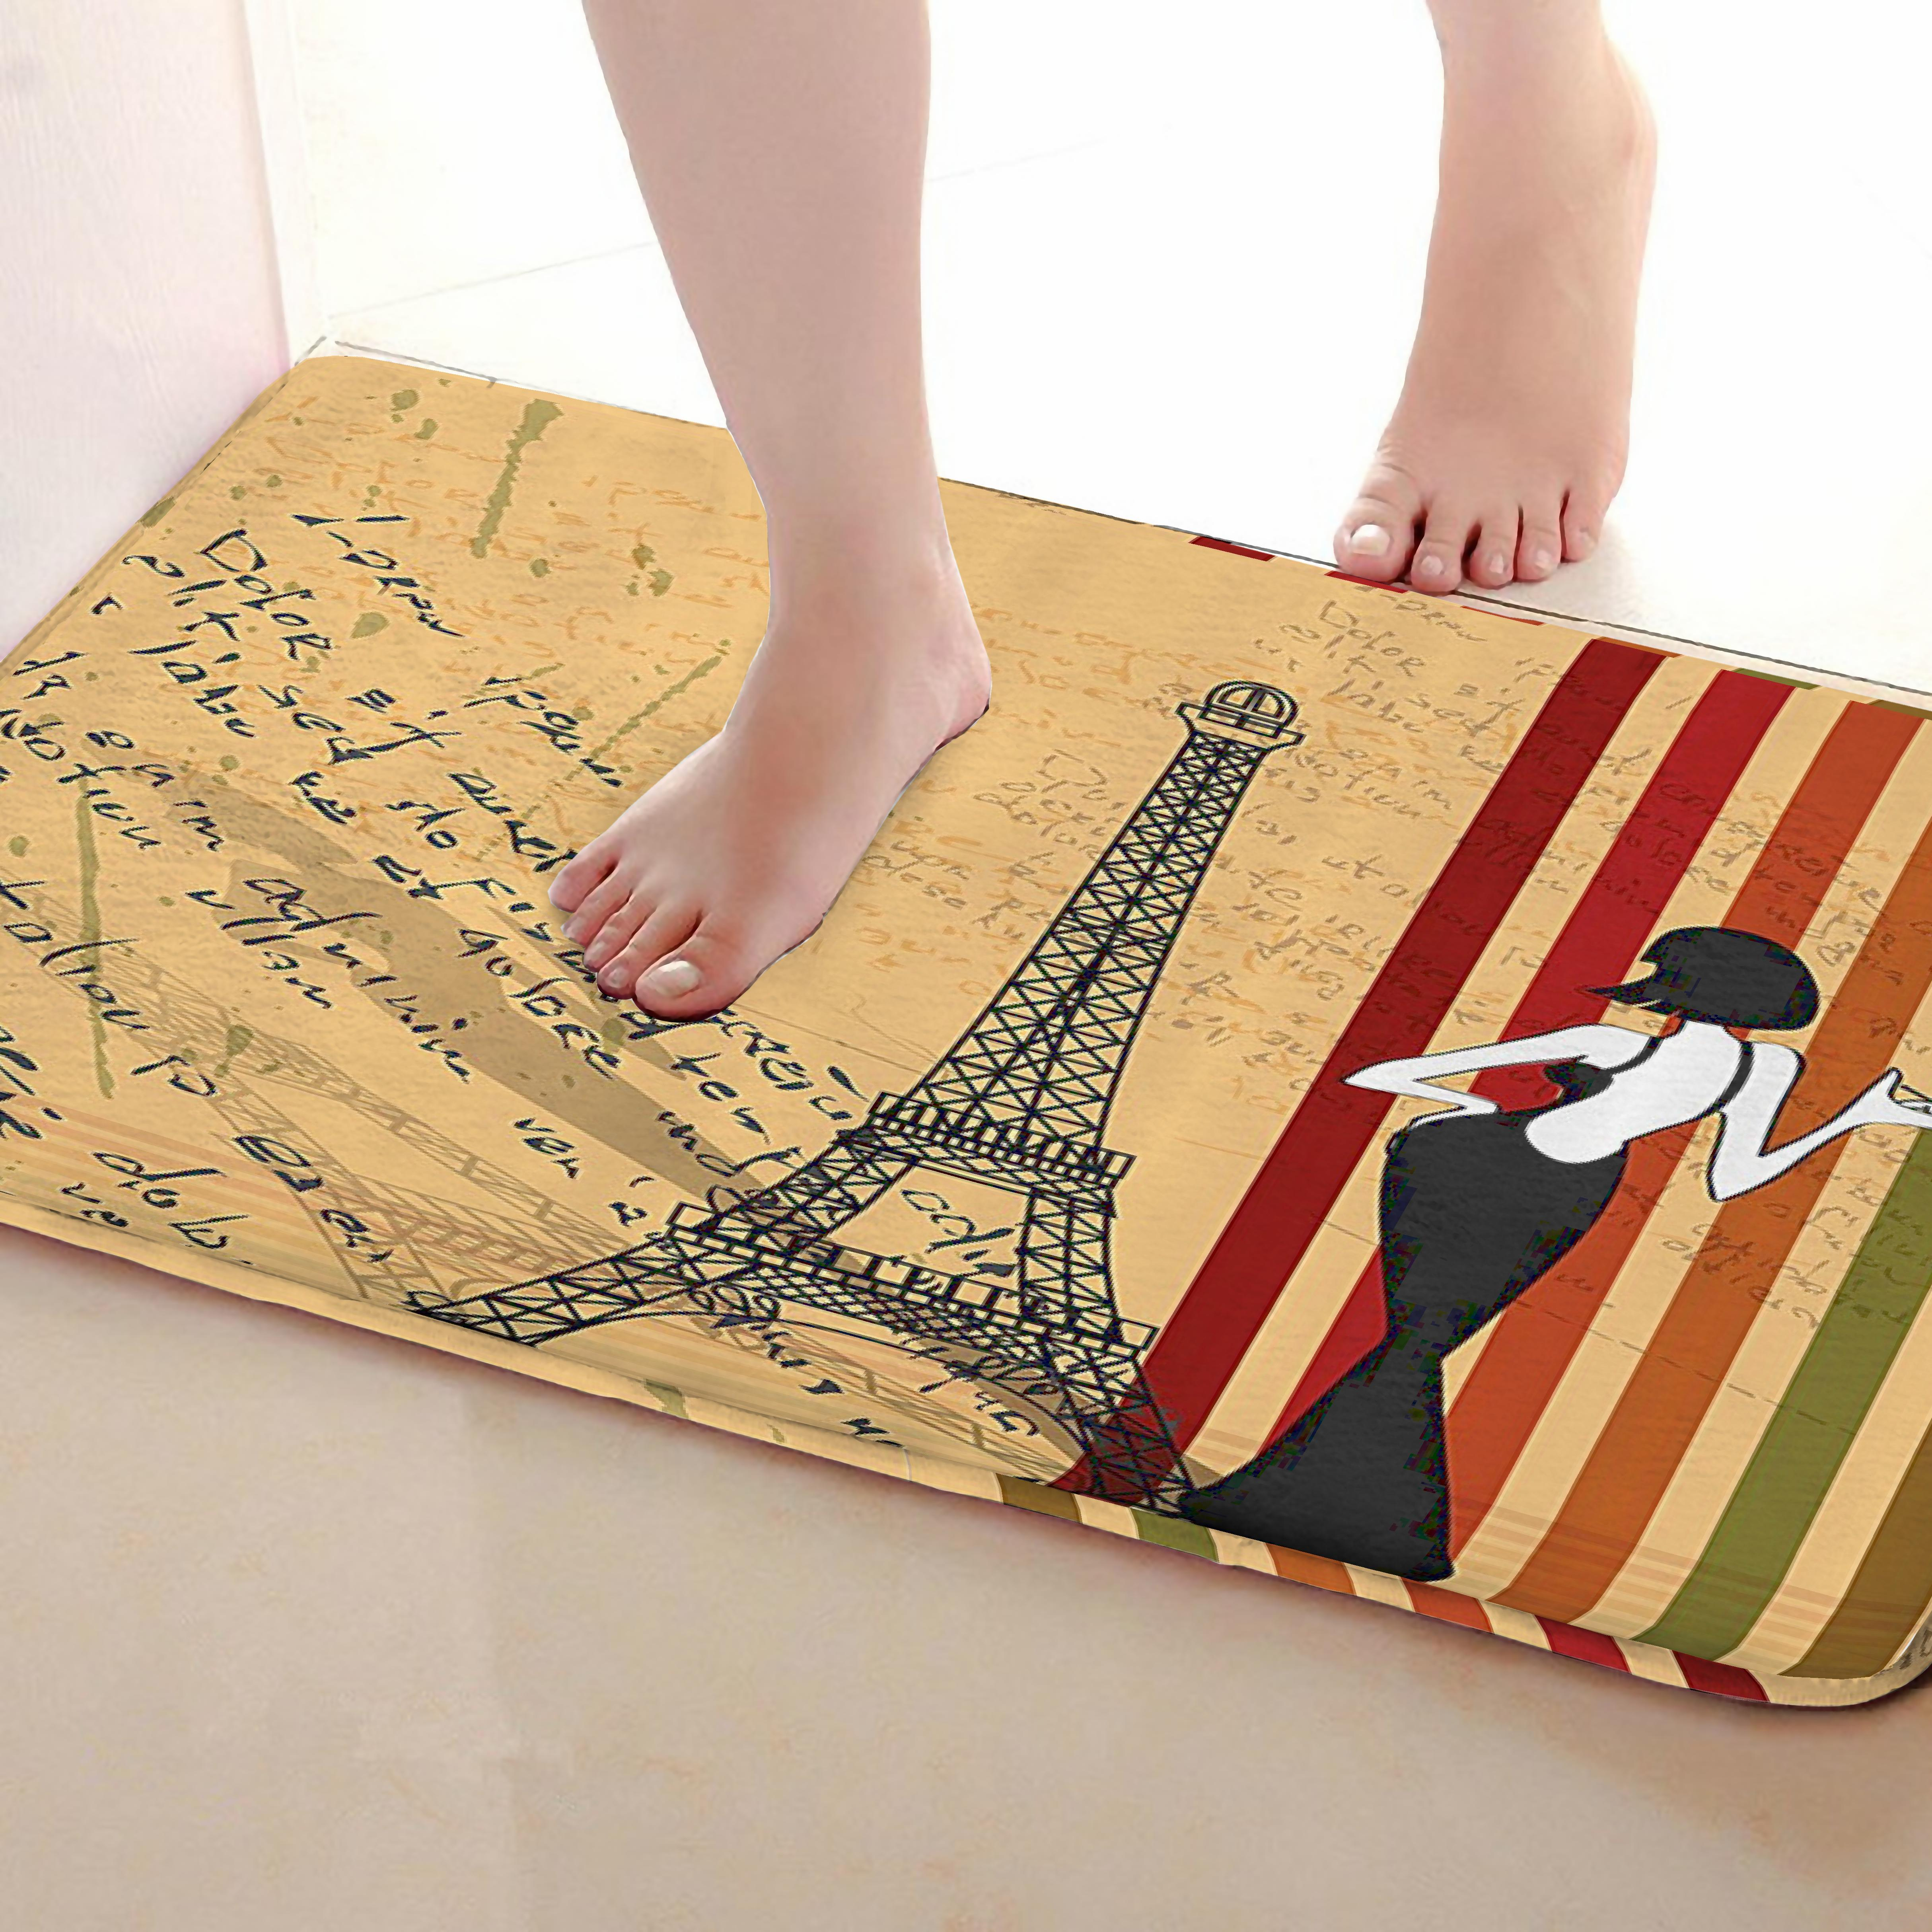 Tower Style Bathroom Mat,Funny Anti Skid Bath Mat,Shower Curtains Accessories,Matching Your Shower Curtain